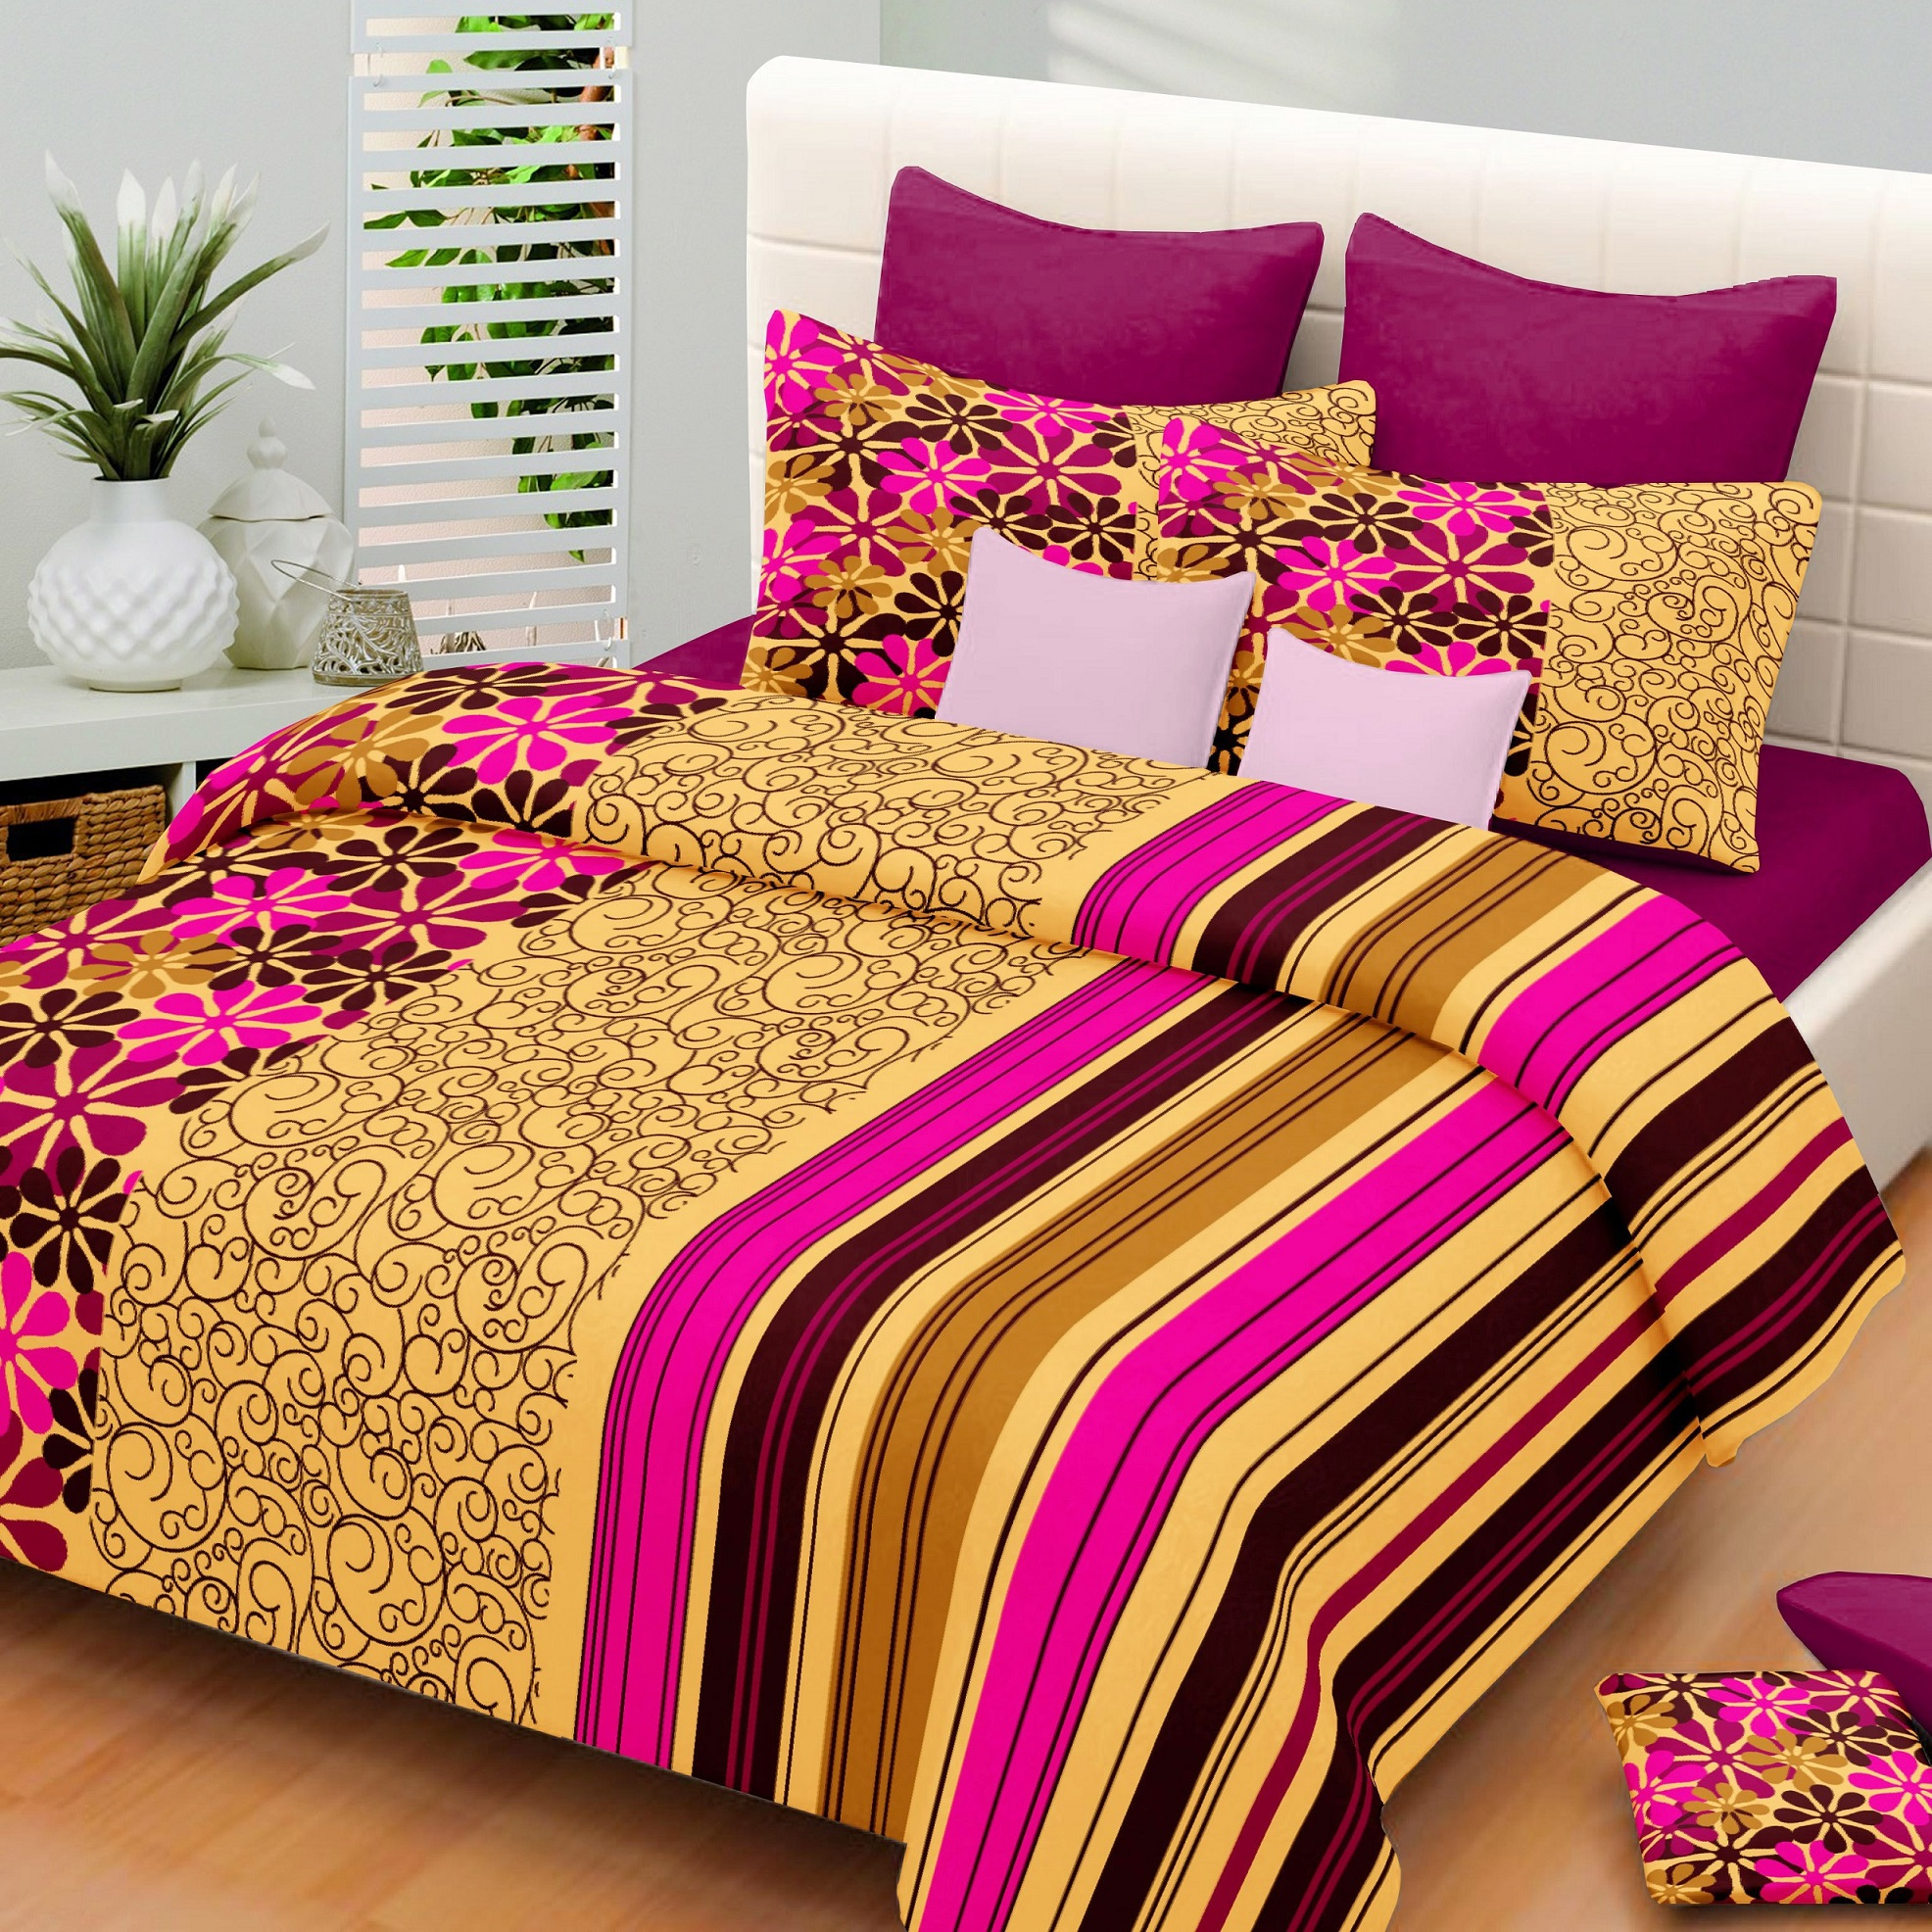 Buy Customized Bed Sheetsu0026 Cushion Covers Online At Best Price In India